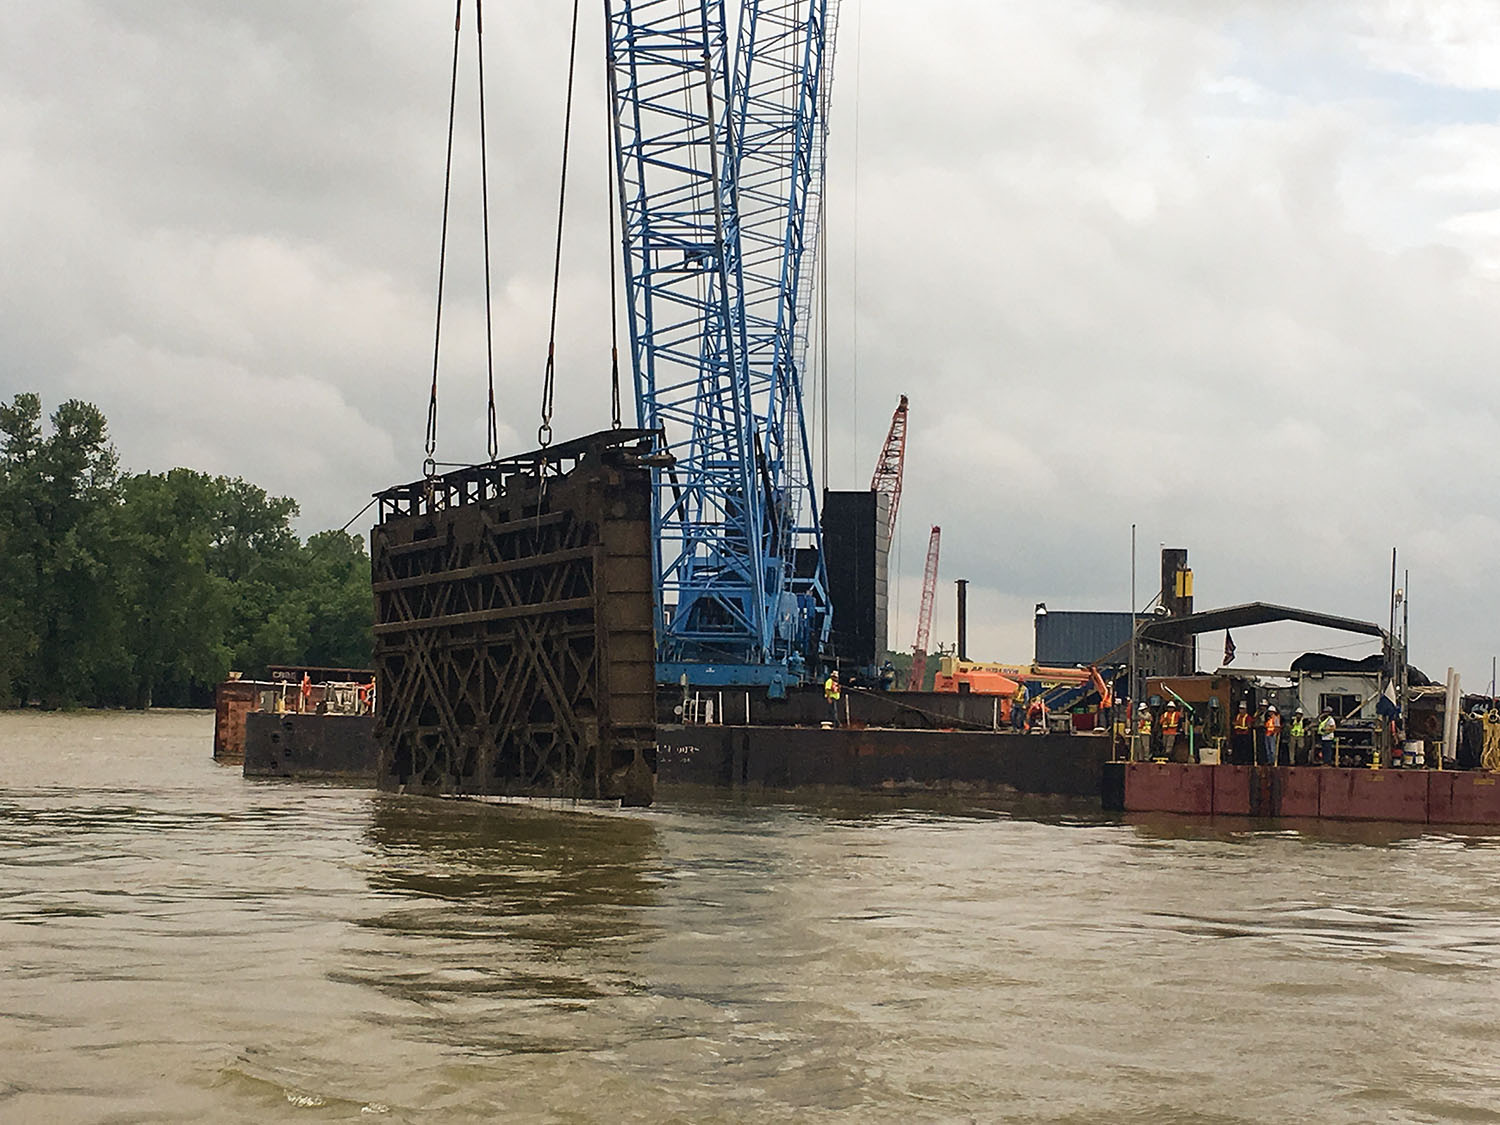 Miter gates are removed from the former Locks and Dam 53 in December 2019. (Photo courtesy Louisville Engineer District)